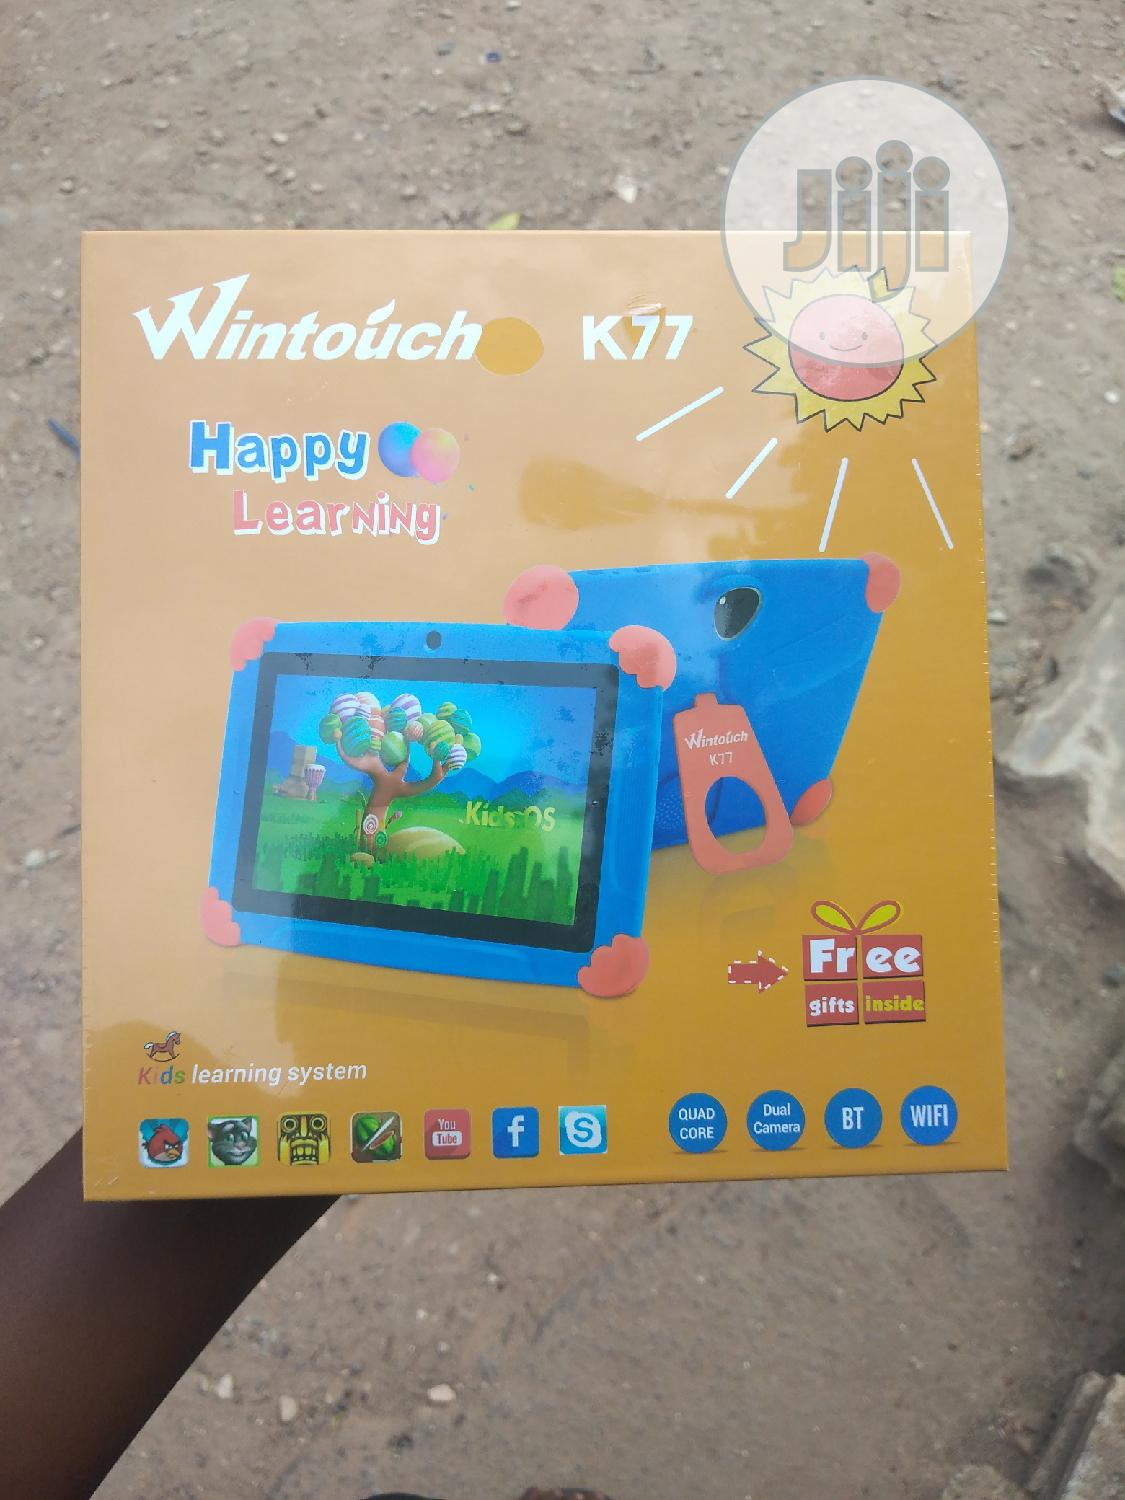 Archive: New Wintouch K77 4 GB Pink